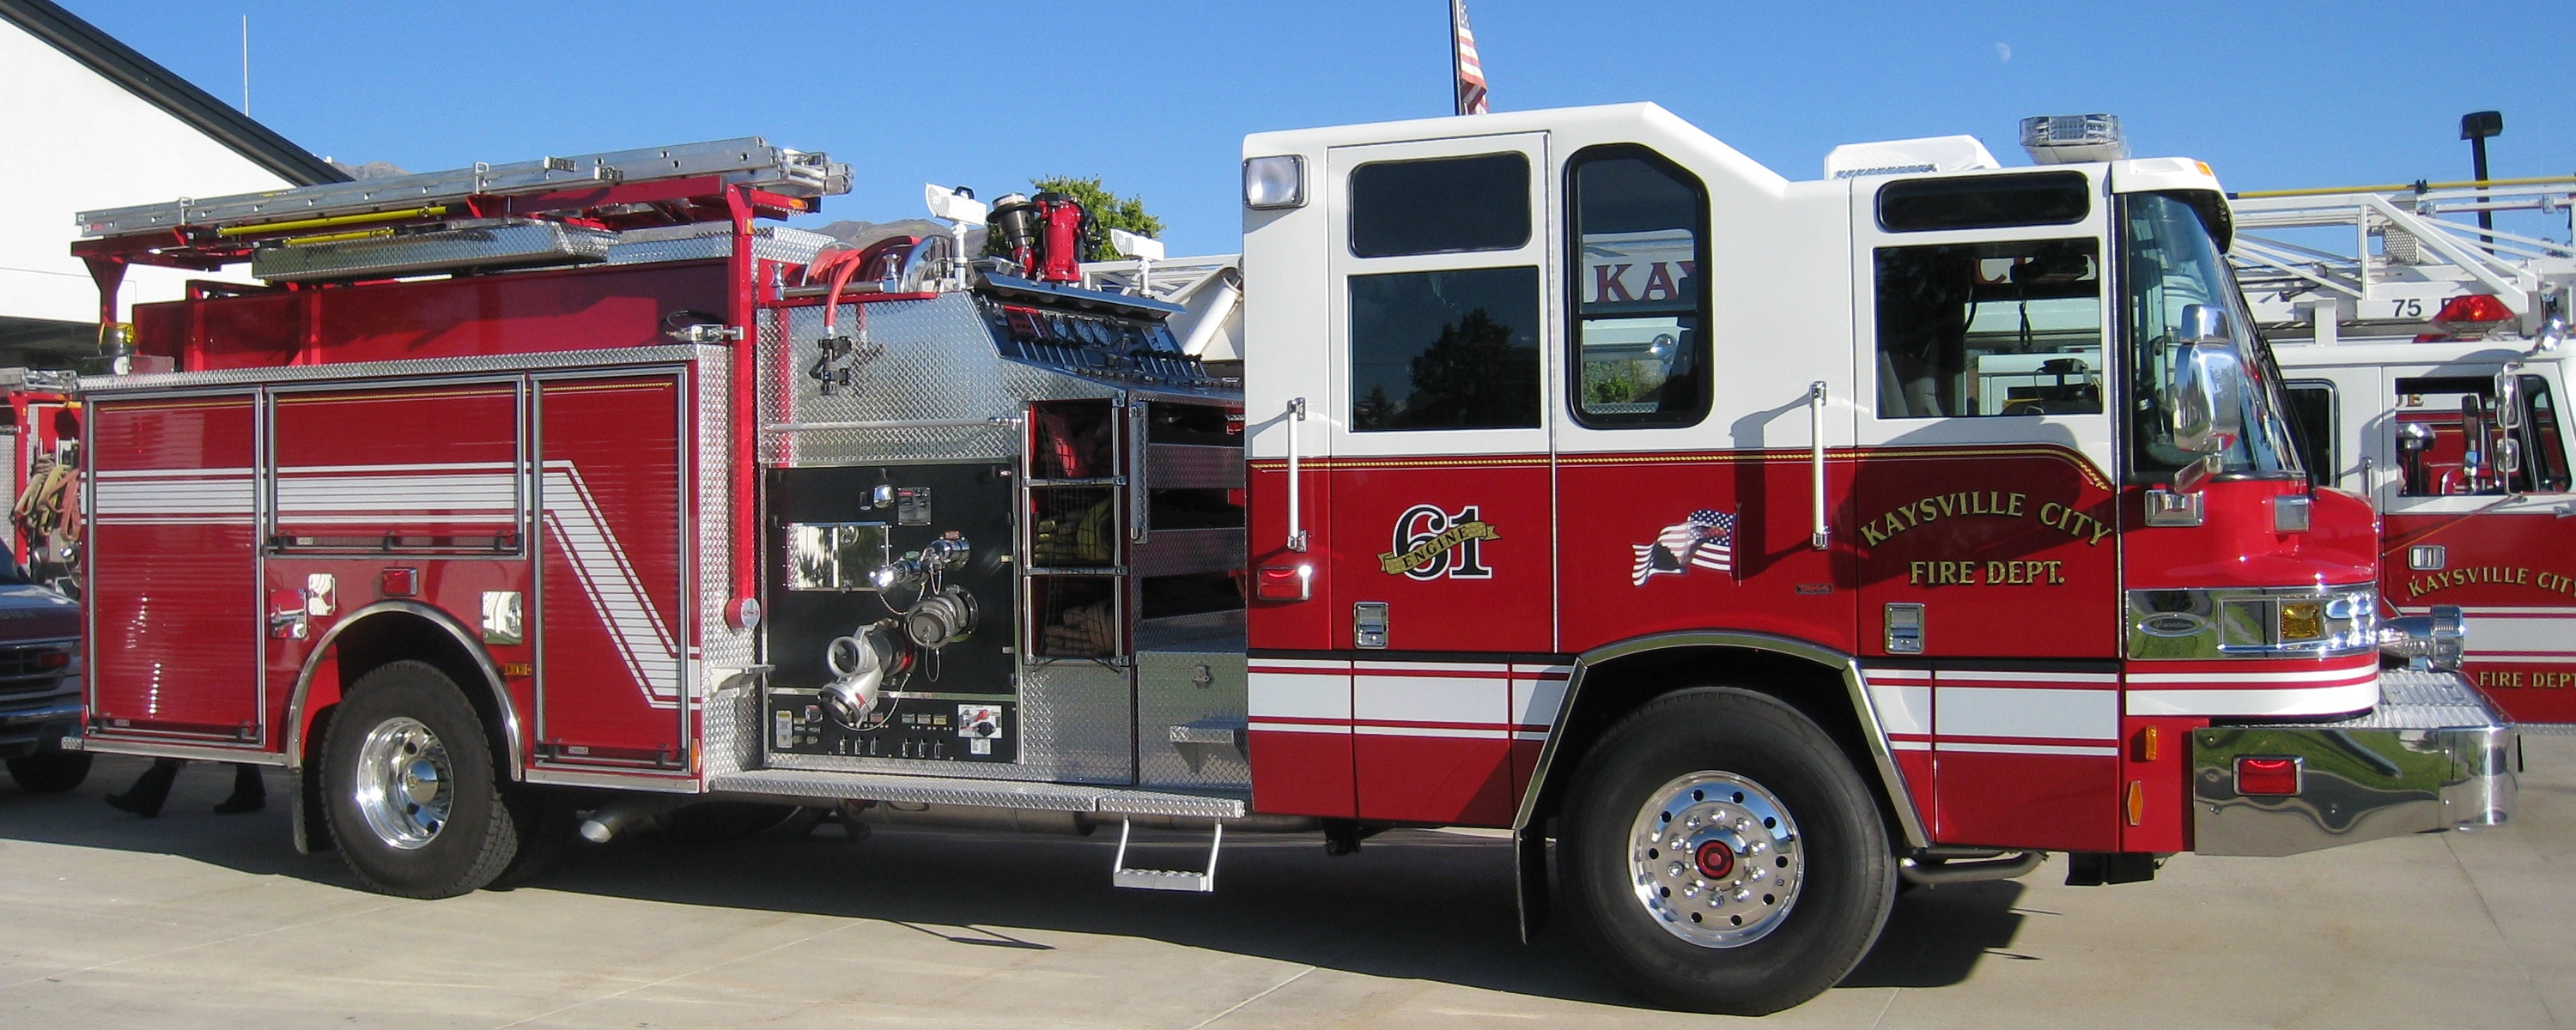 the fire engine - photo #31